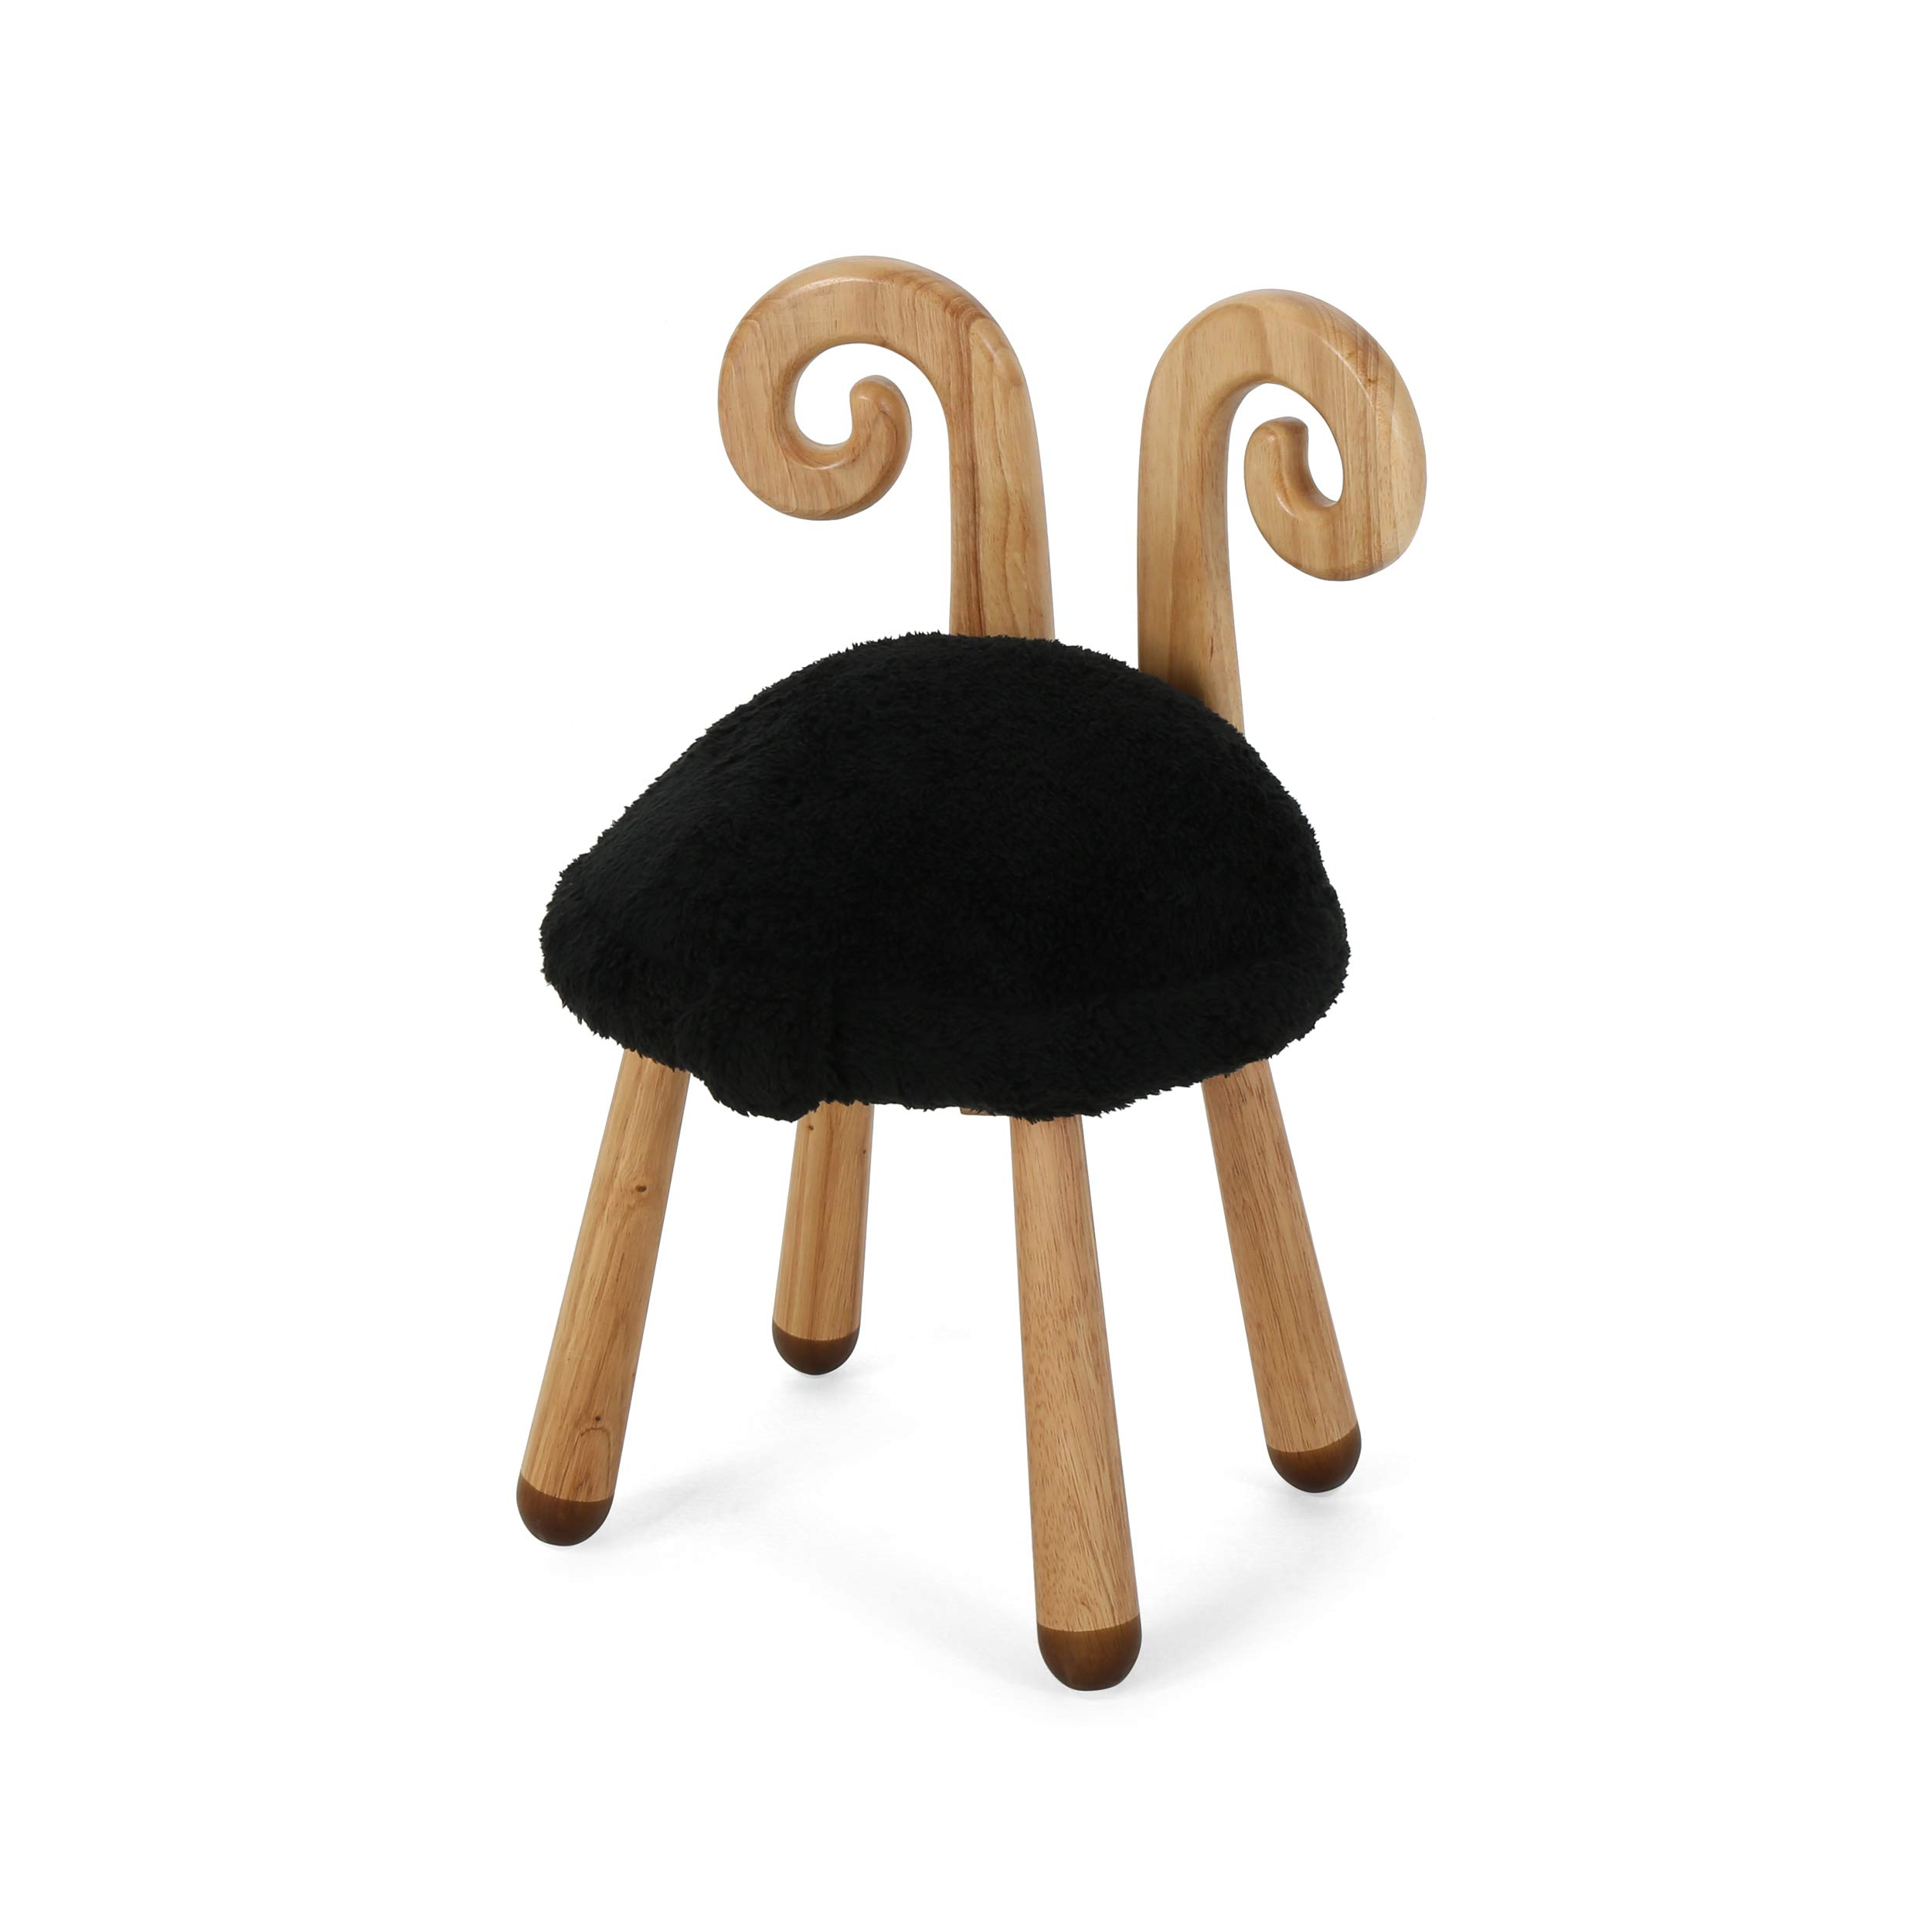 Stoolimals Collection, Faux Fur Sheep Stool, Black by Keiki